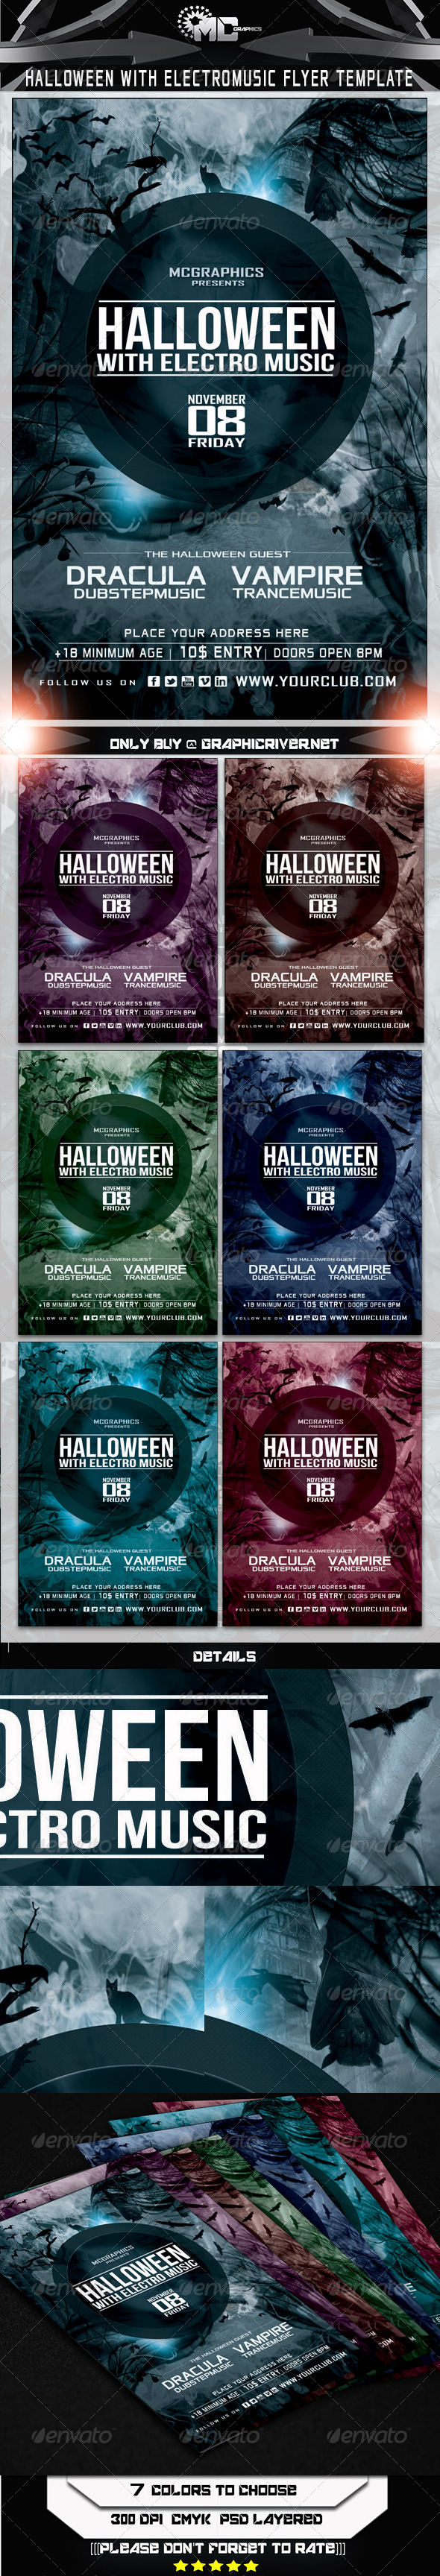 GraphicRiver Halloween With Electro Music Flyer Template 5625518